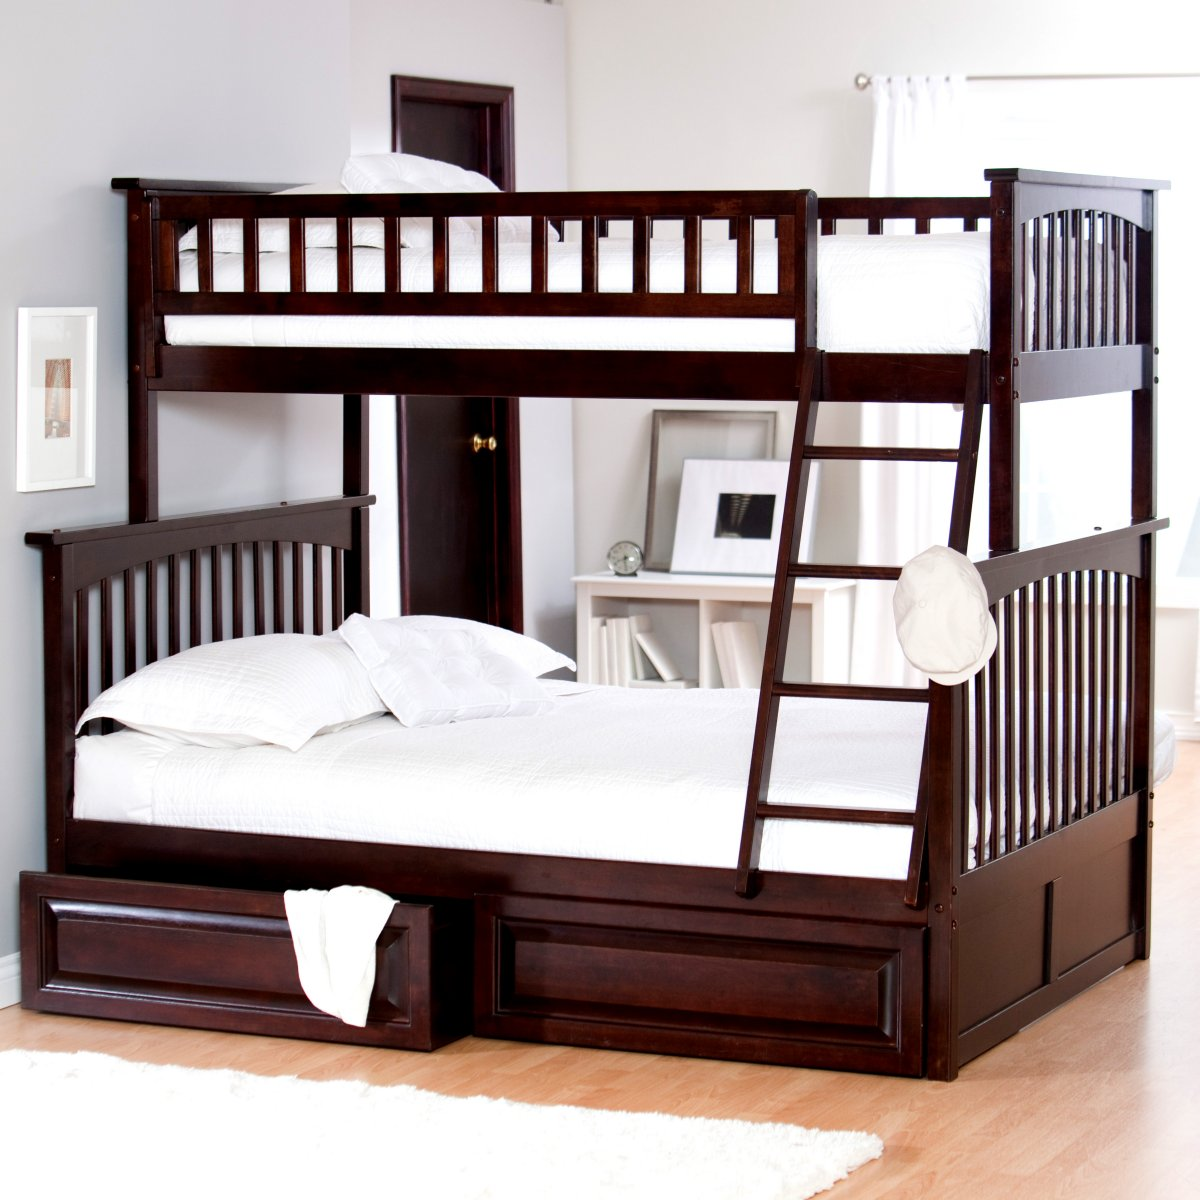 Image of: Full Size Bunk Bed Mattress Type